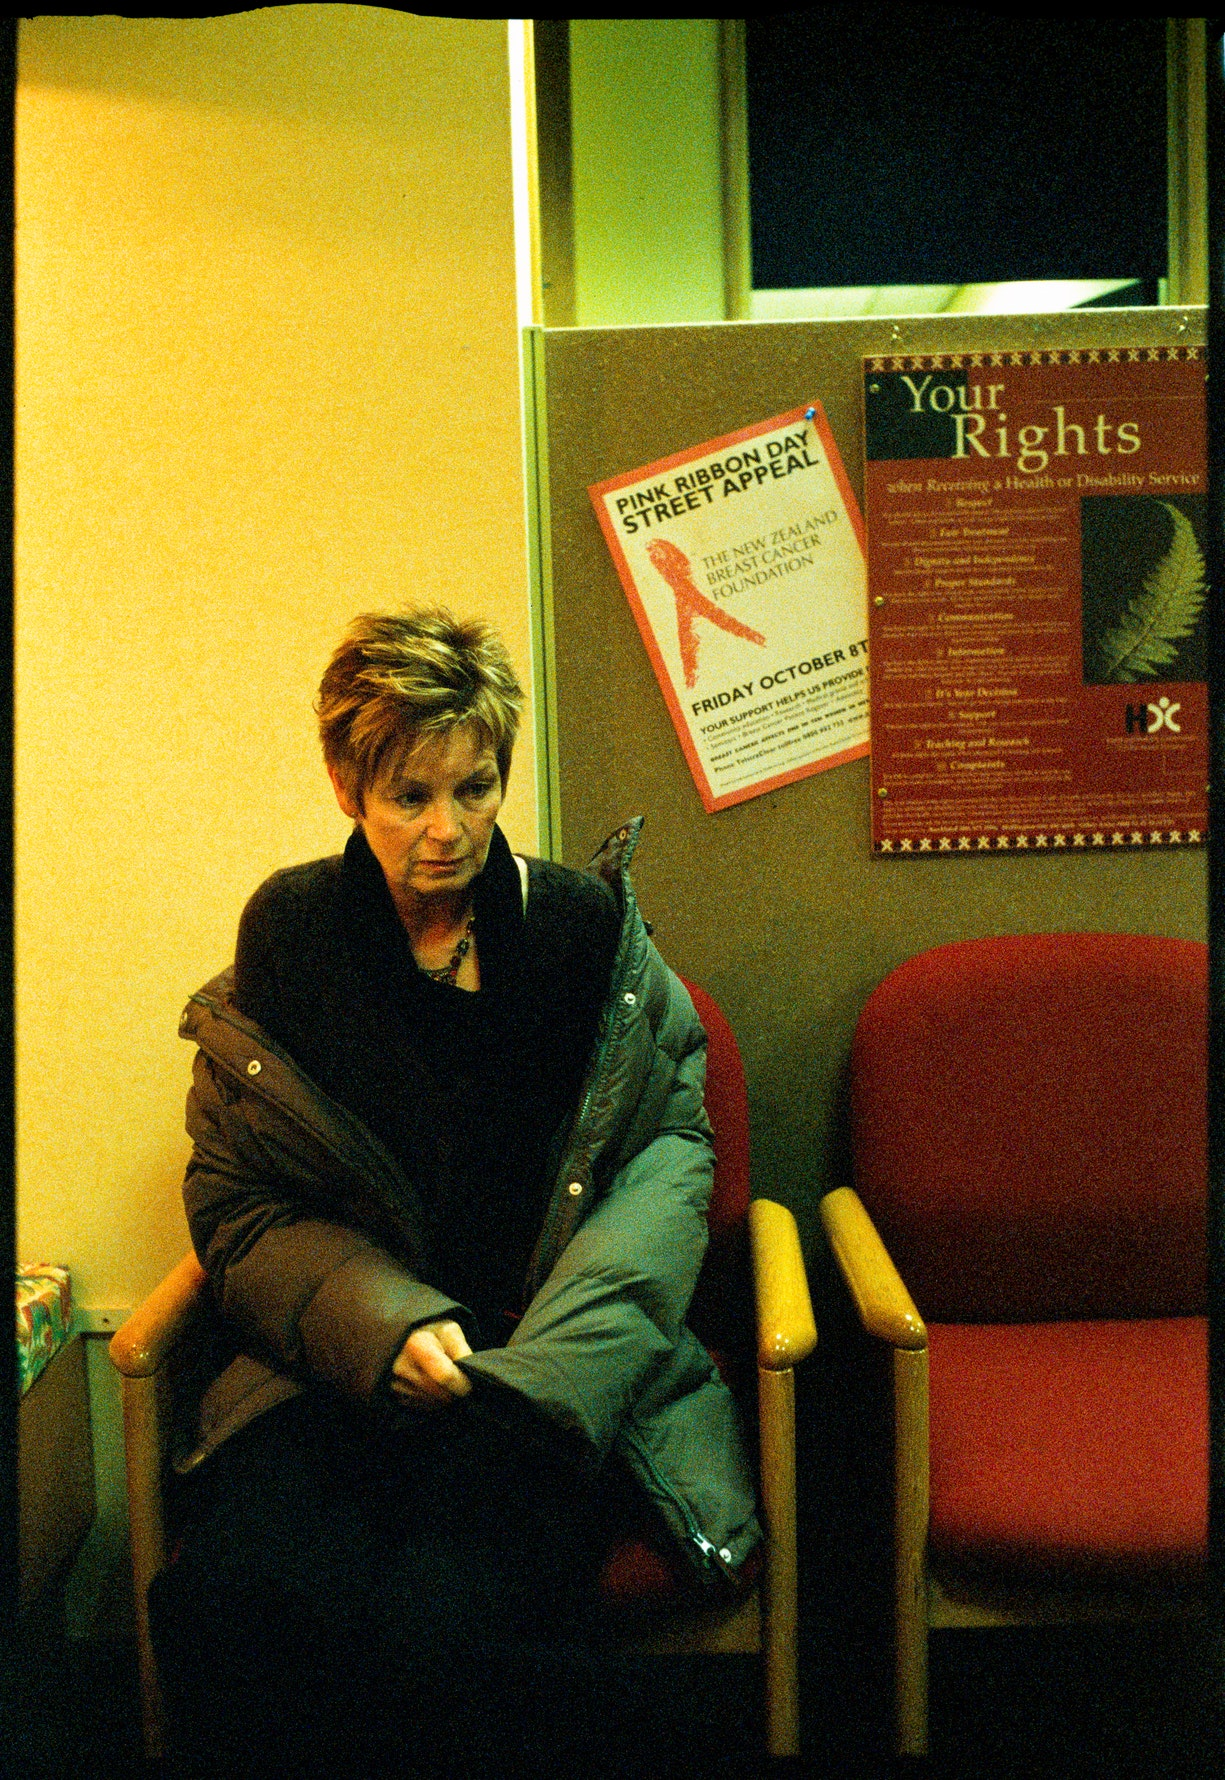 Breast Care Waiting Room, 2006.